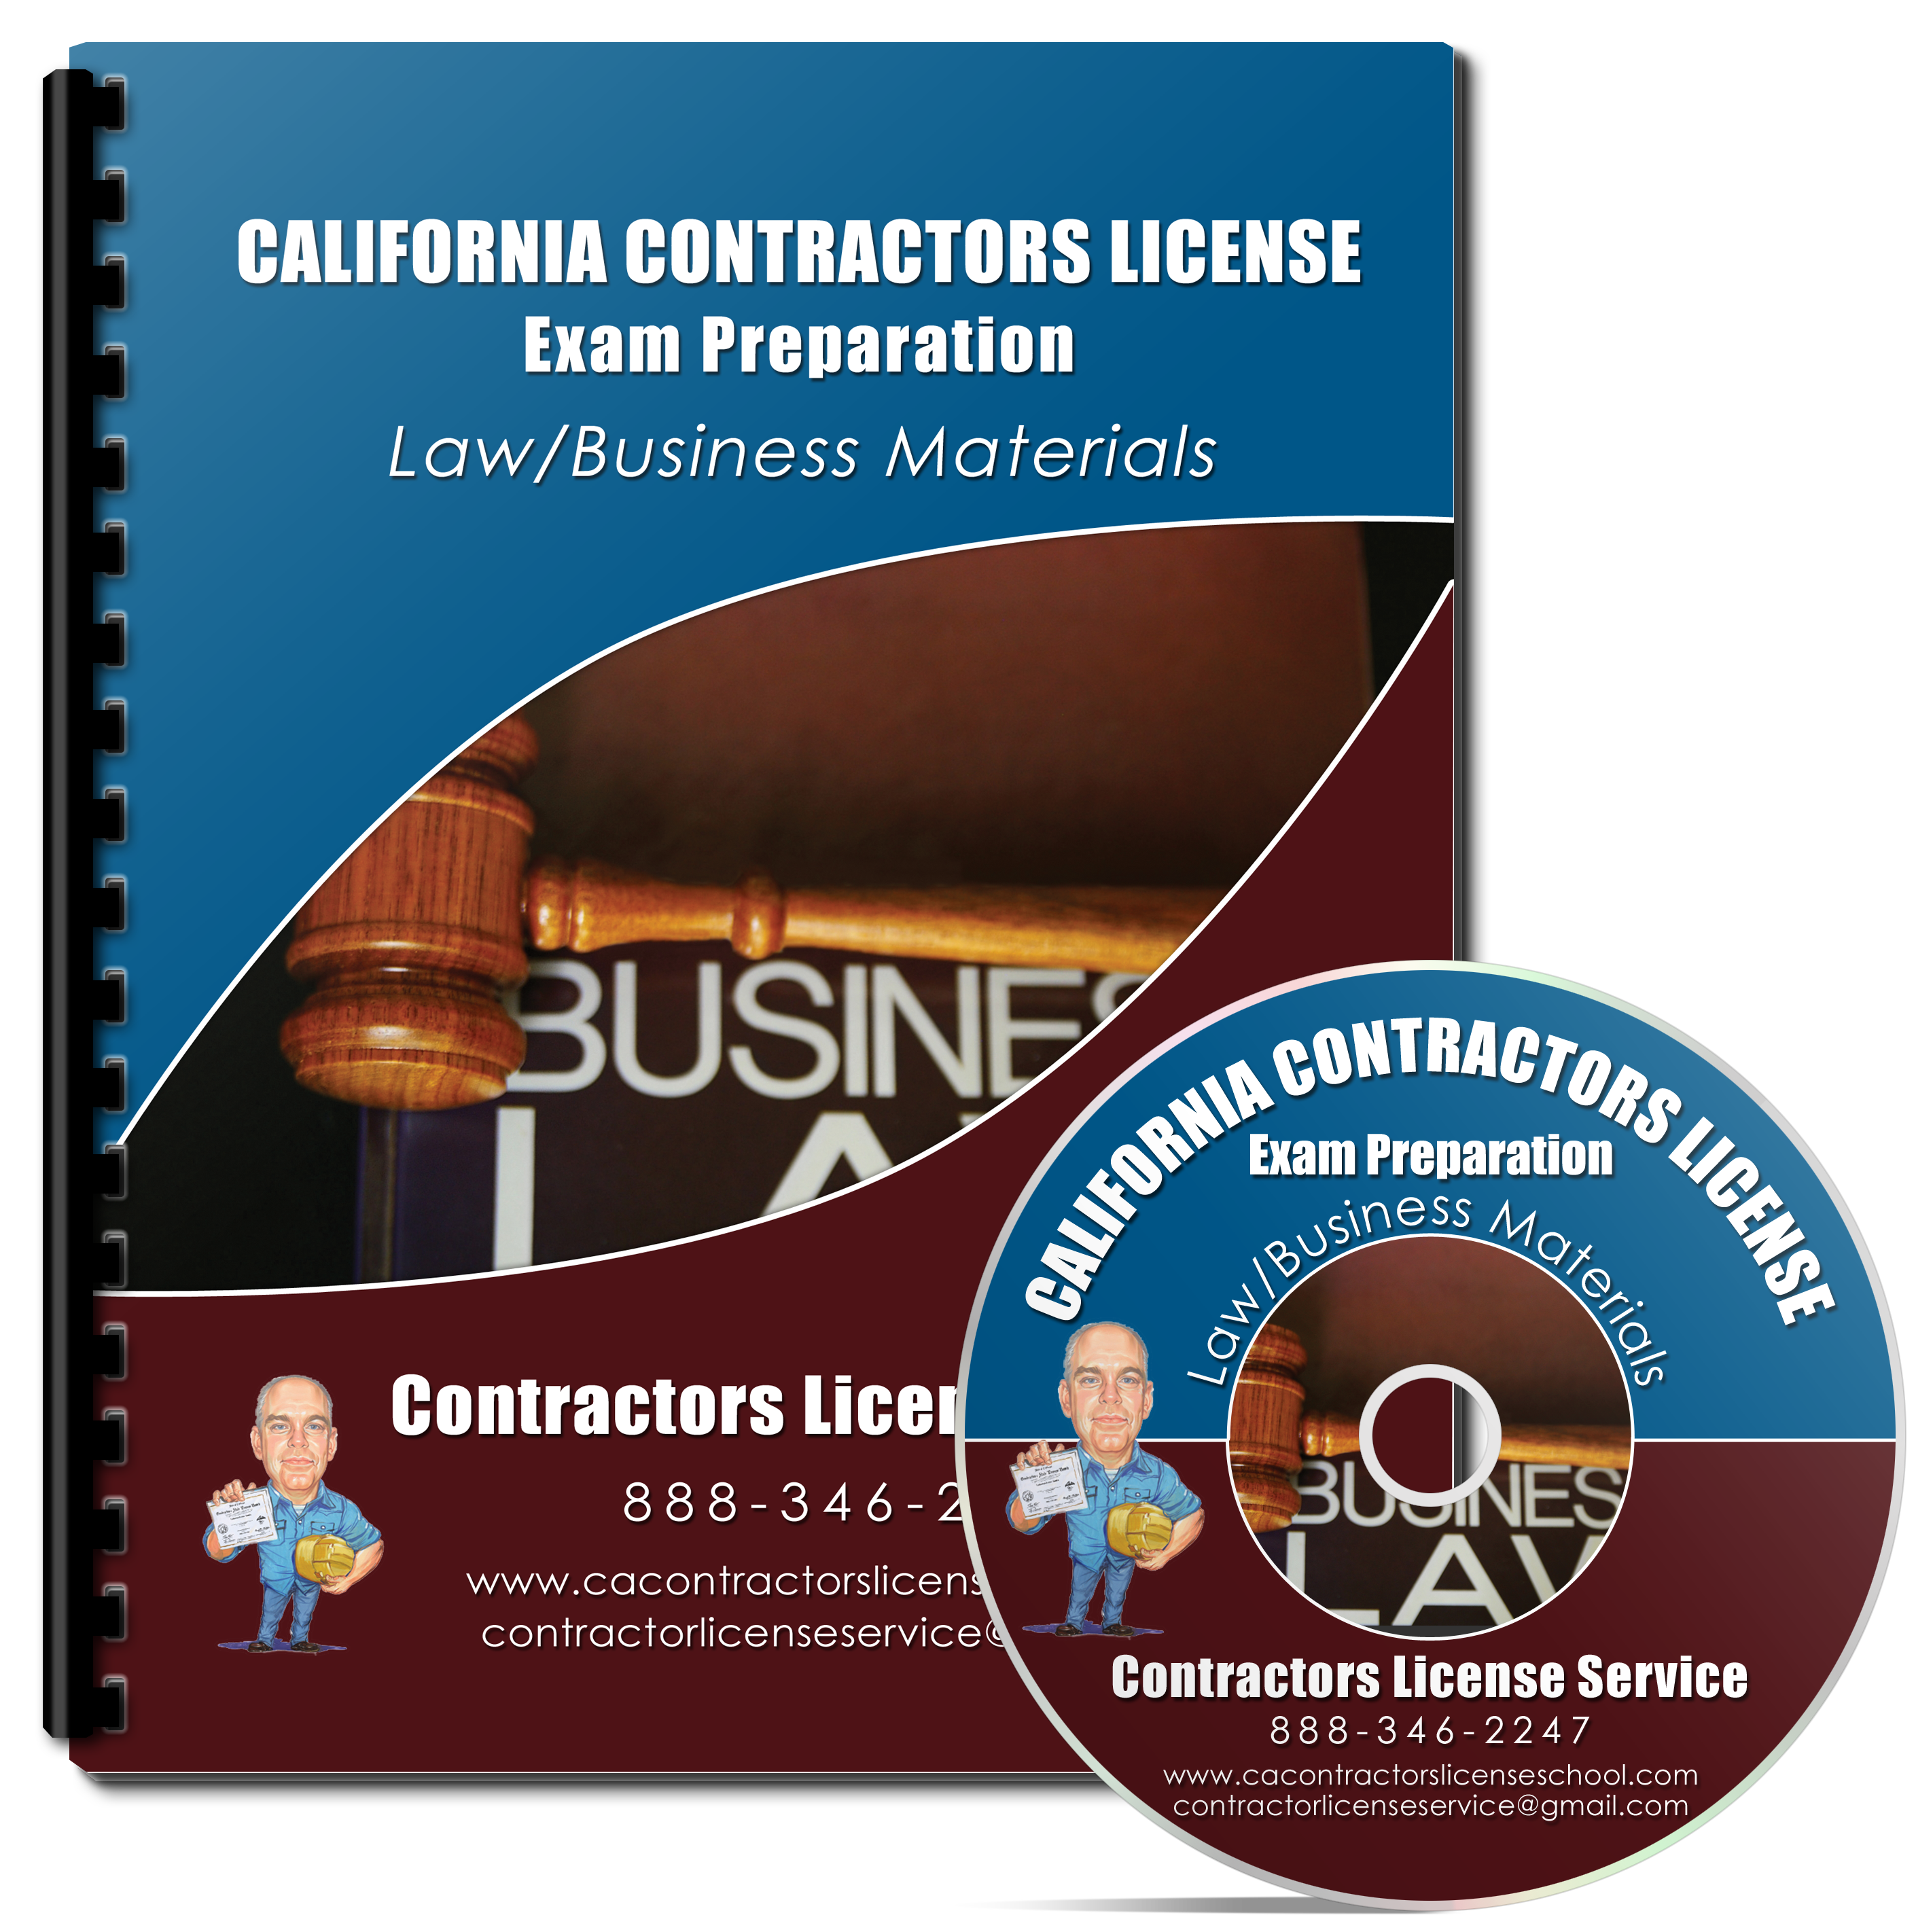 Home Study - Contractors License School California